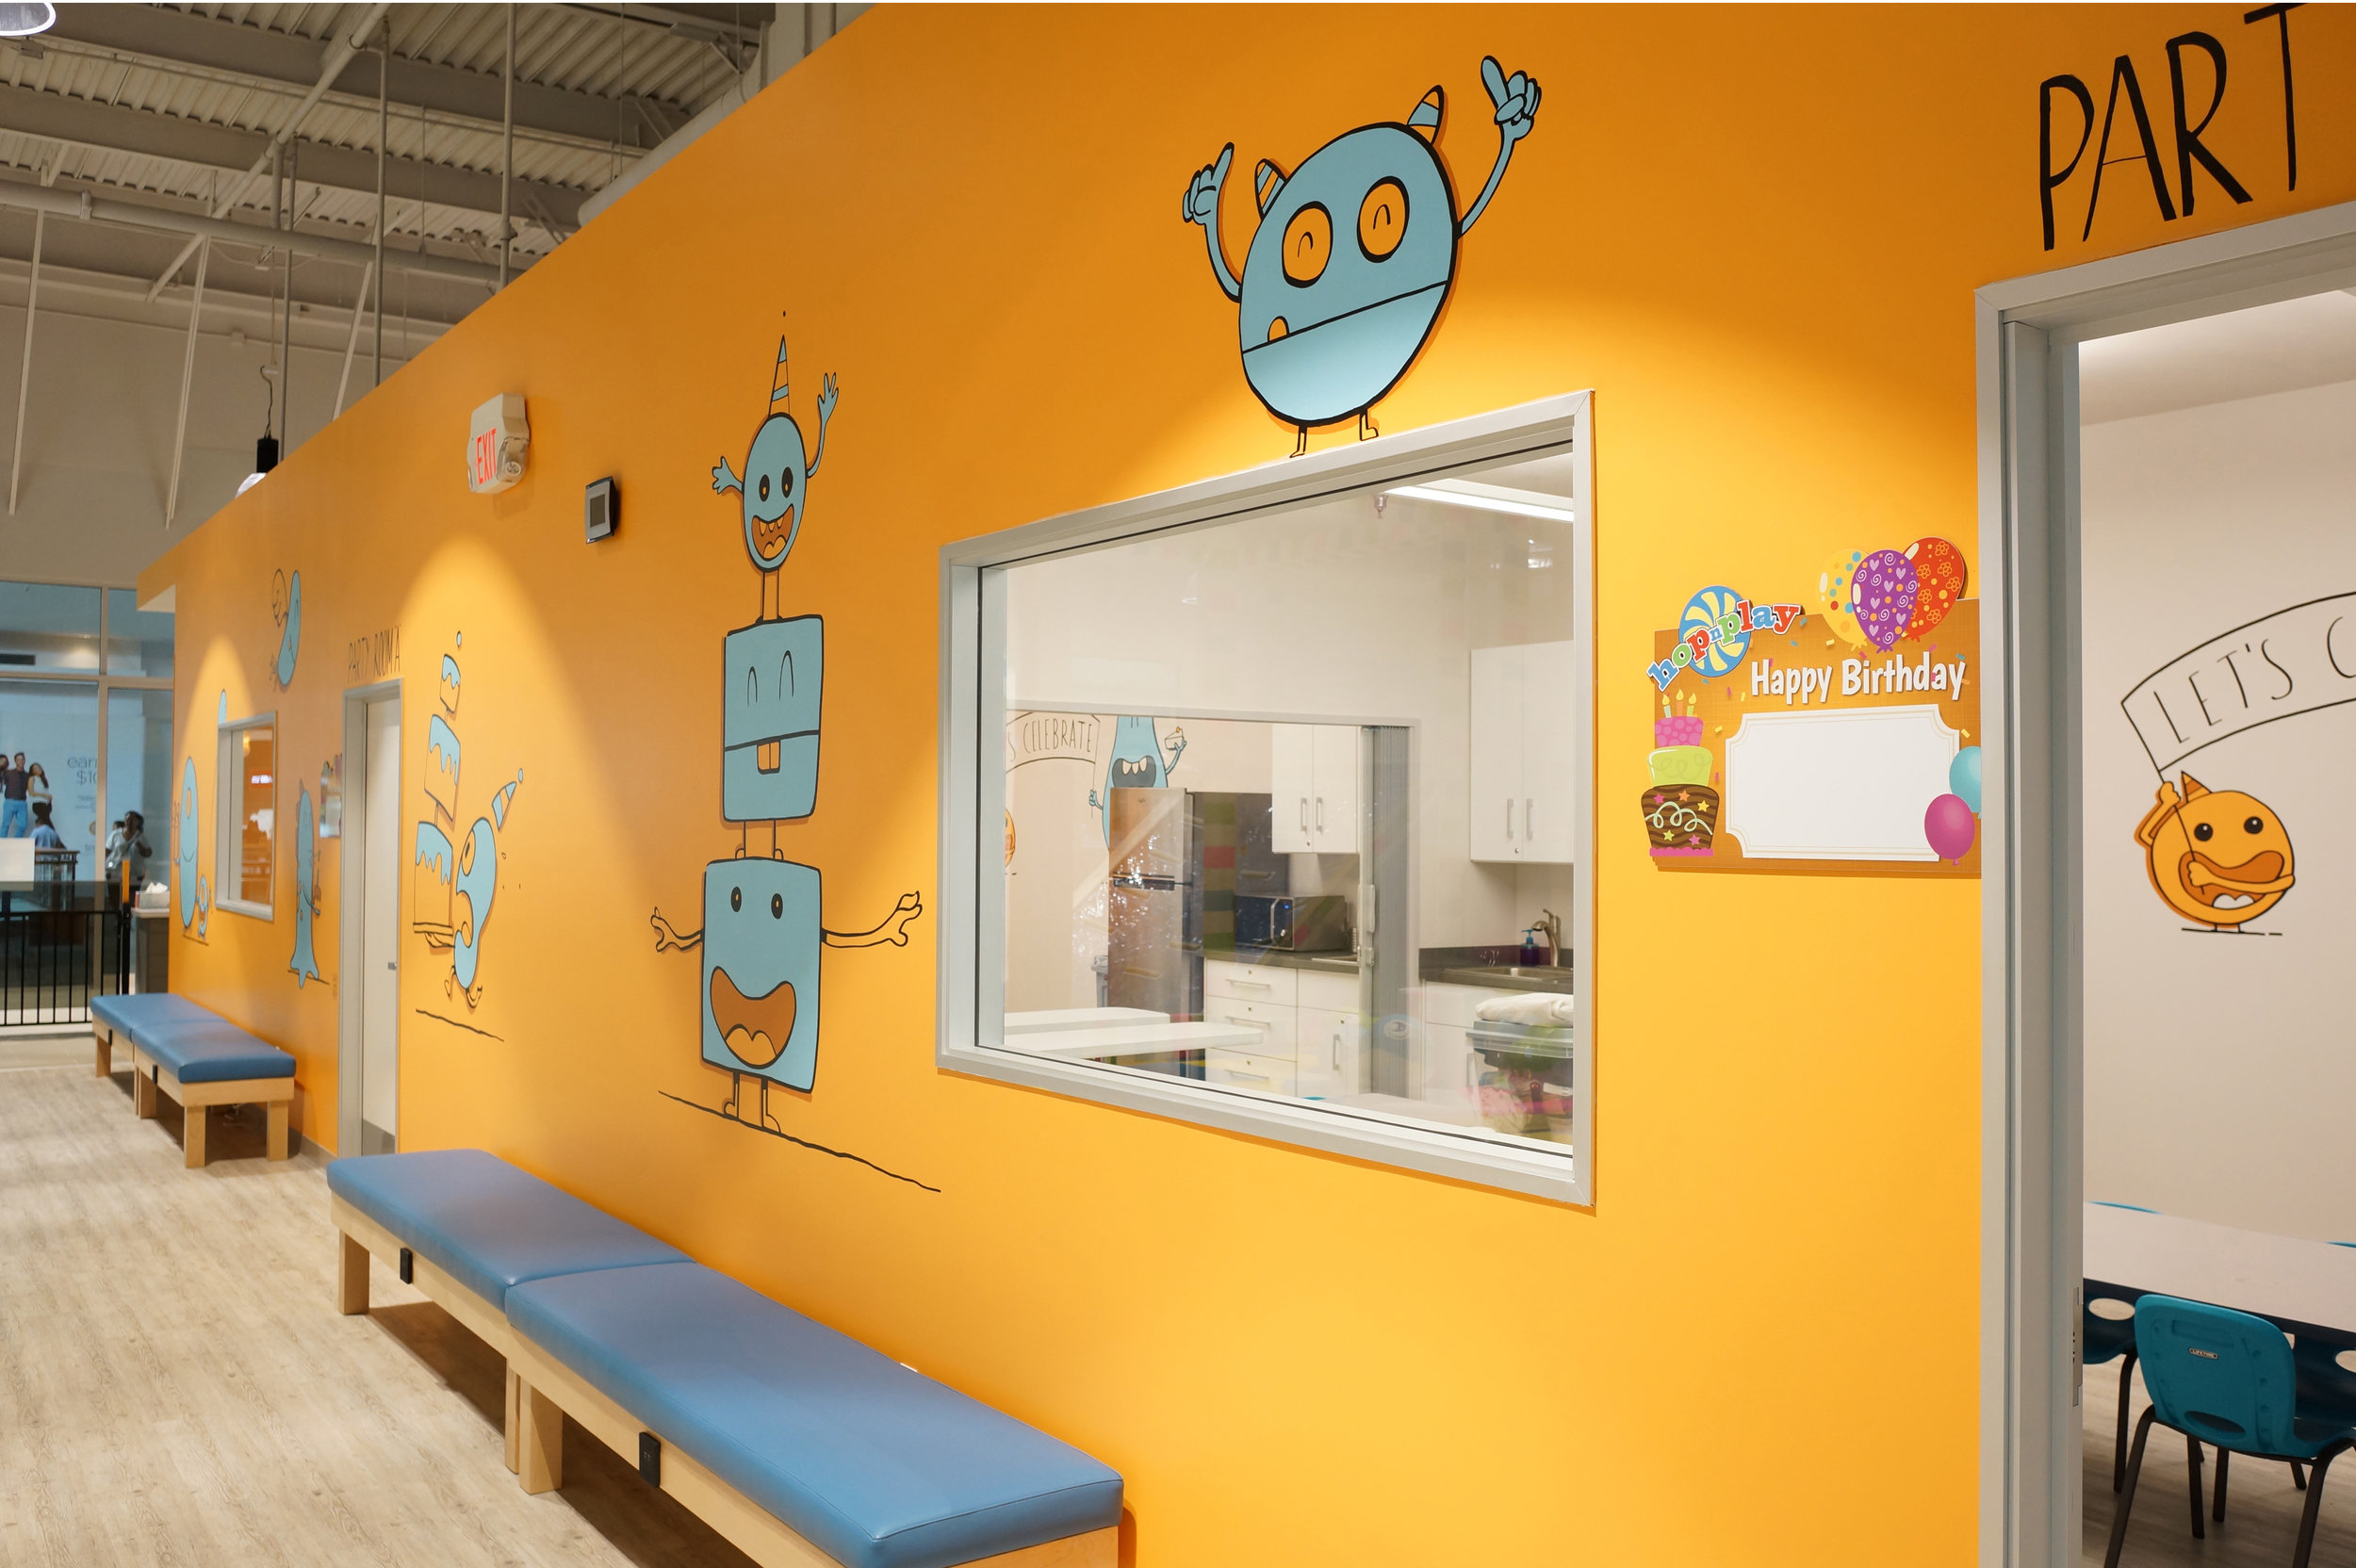 Office-commercial-mural-san-francisco-hop-n-play-wall-and-wall-mural-company_005.jpg